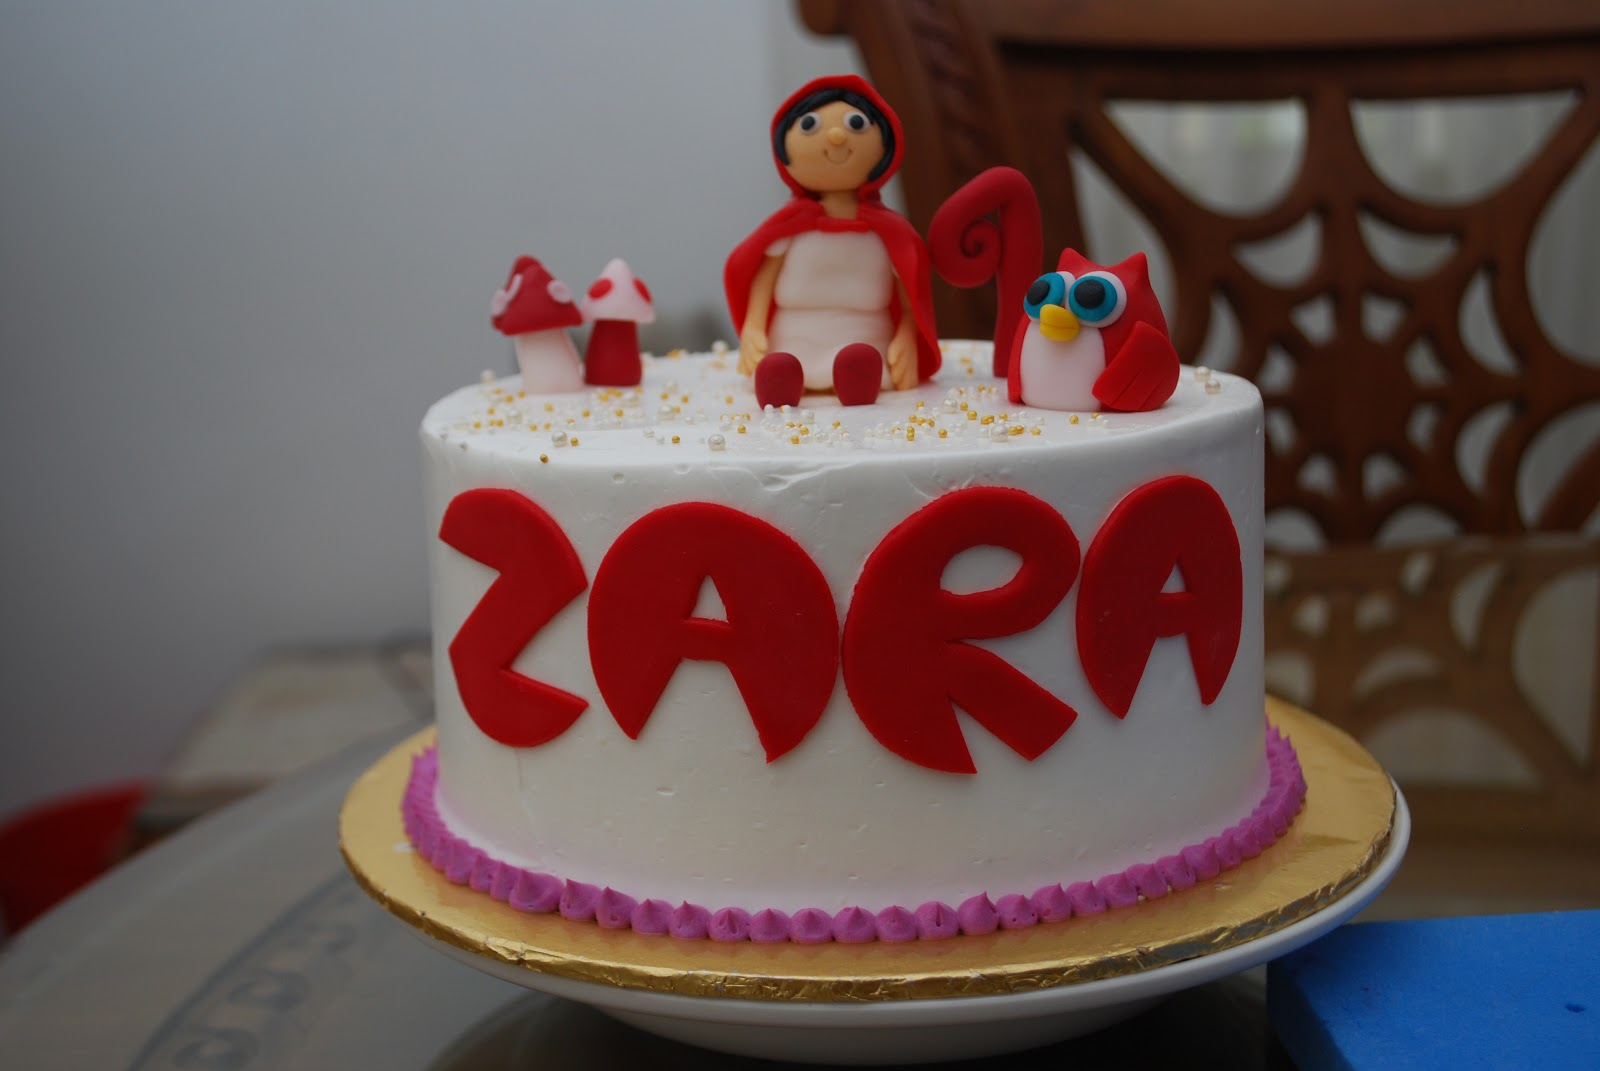 Happy Birthday Cake Zara